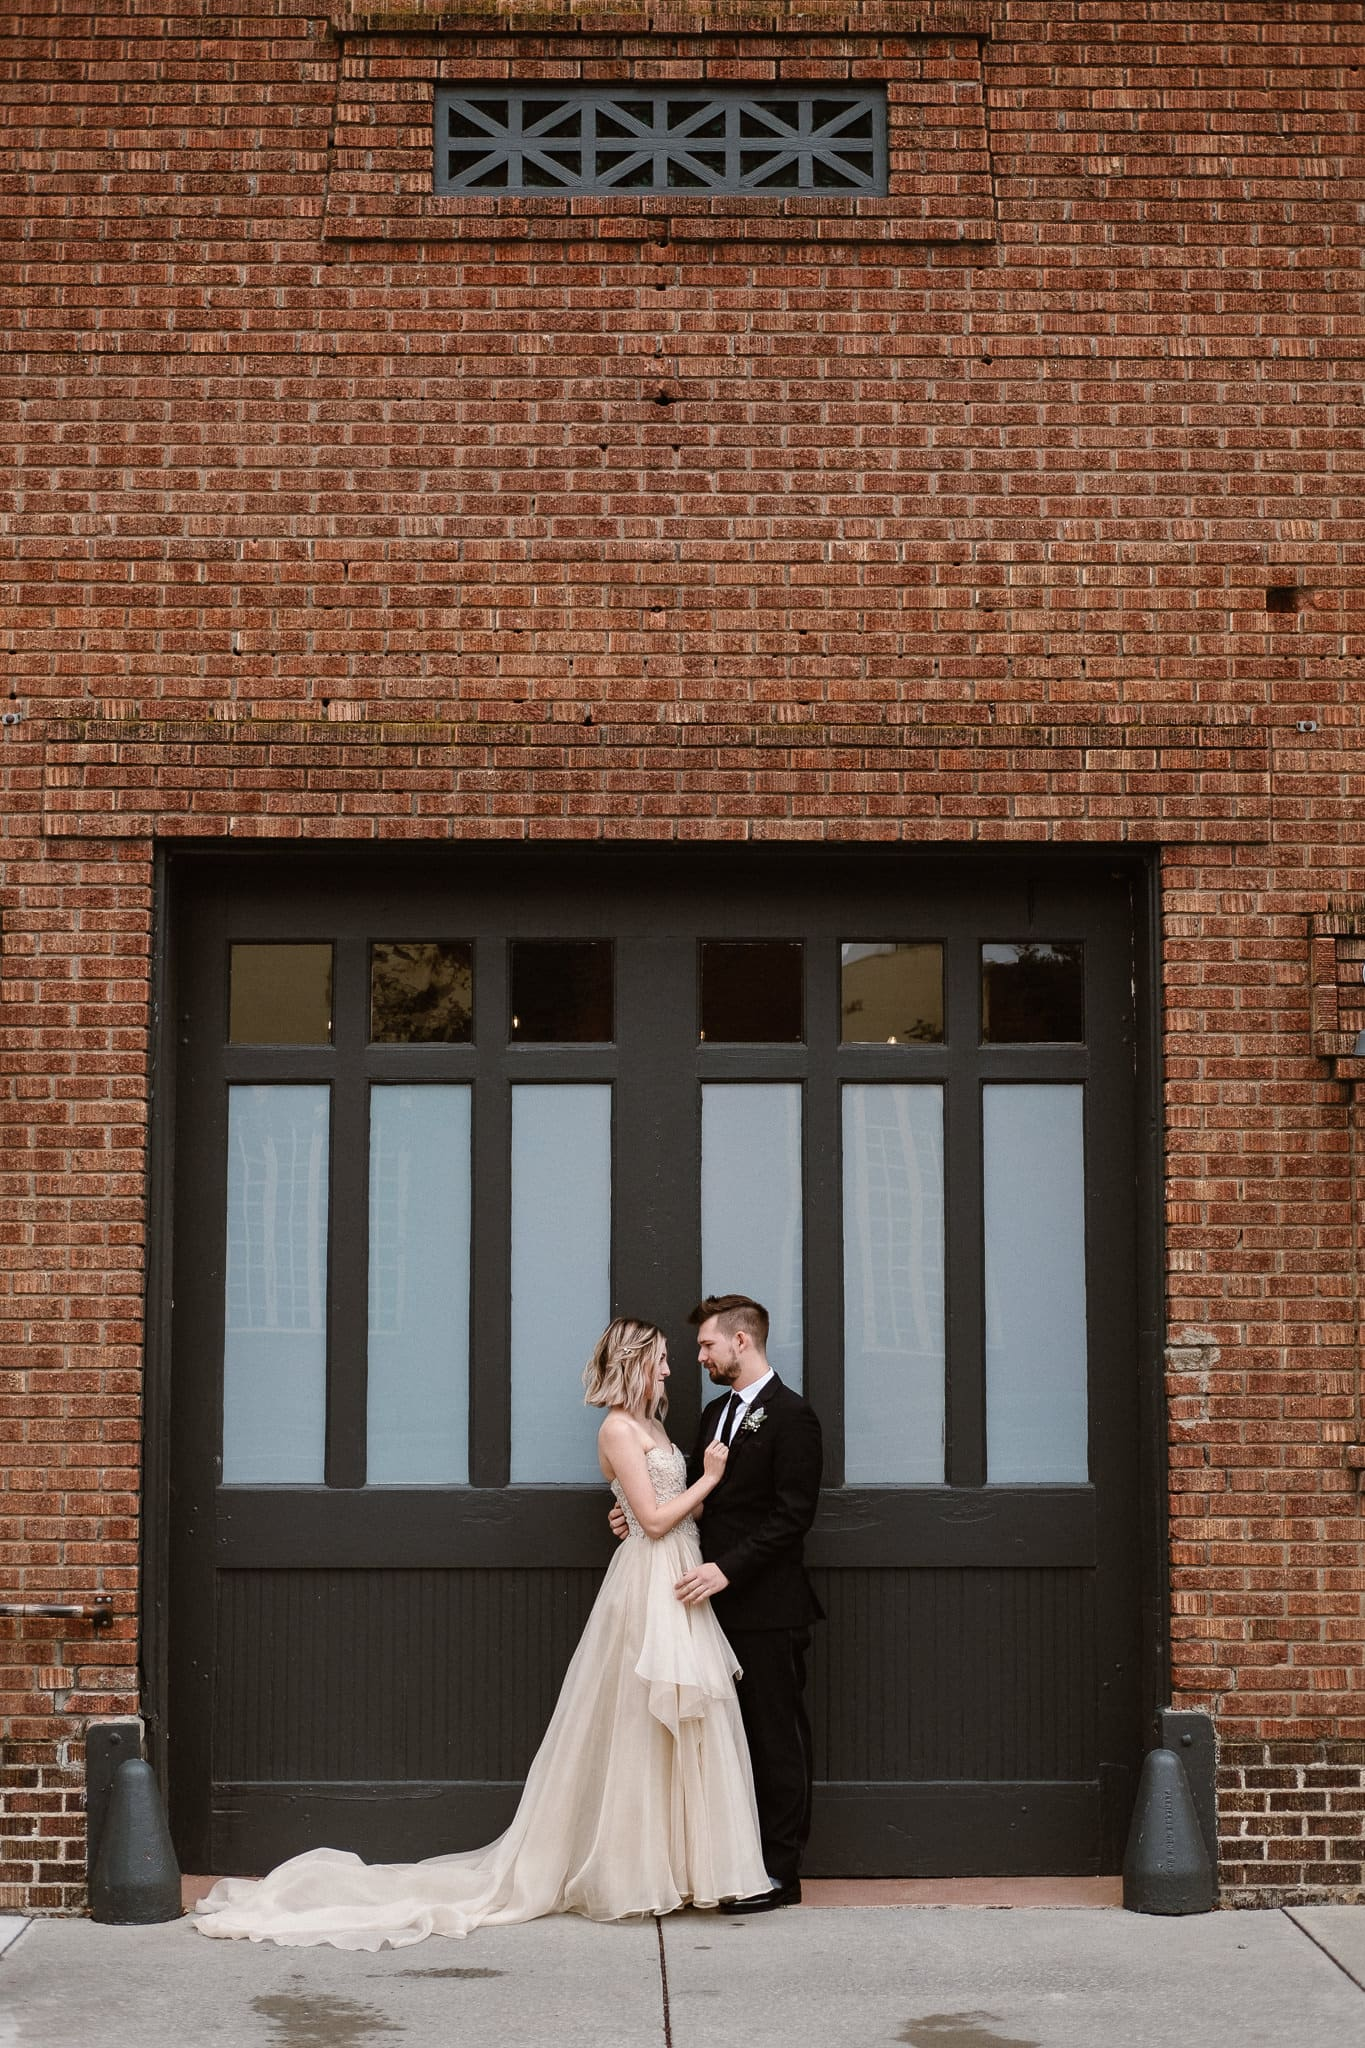 St Vrain Wedding Photographer | Longmont Wedding Photographer | Colorado Winter Wedding Photographer, Colorado industrial chic wedding, bride and groom portraits